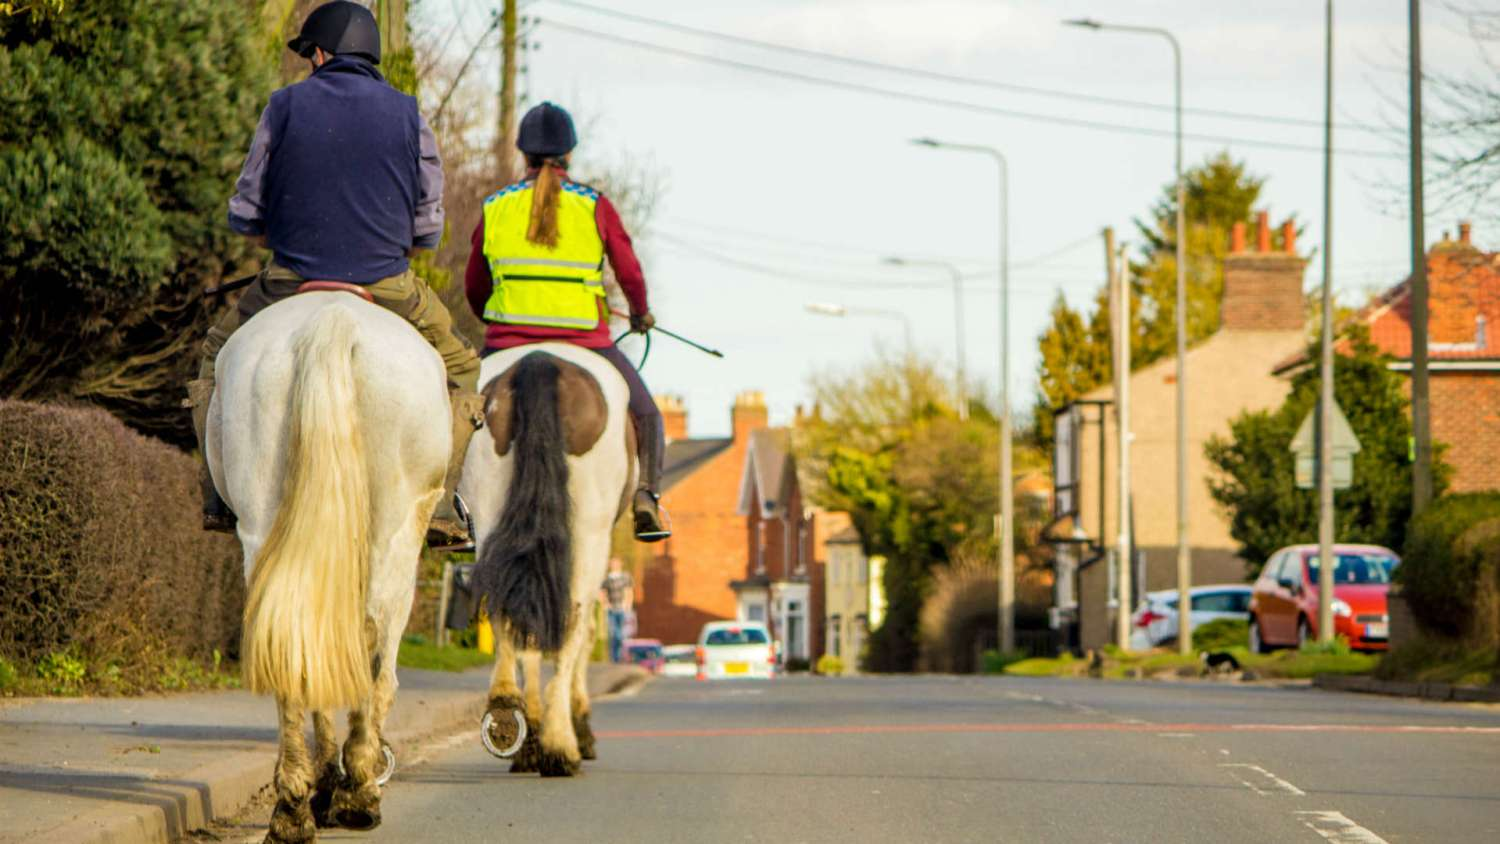 How to pass horses safely on the road